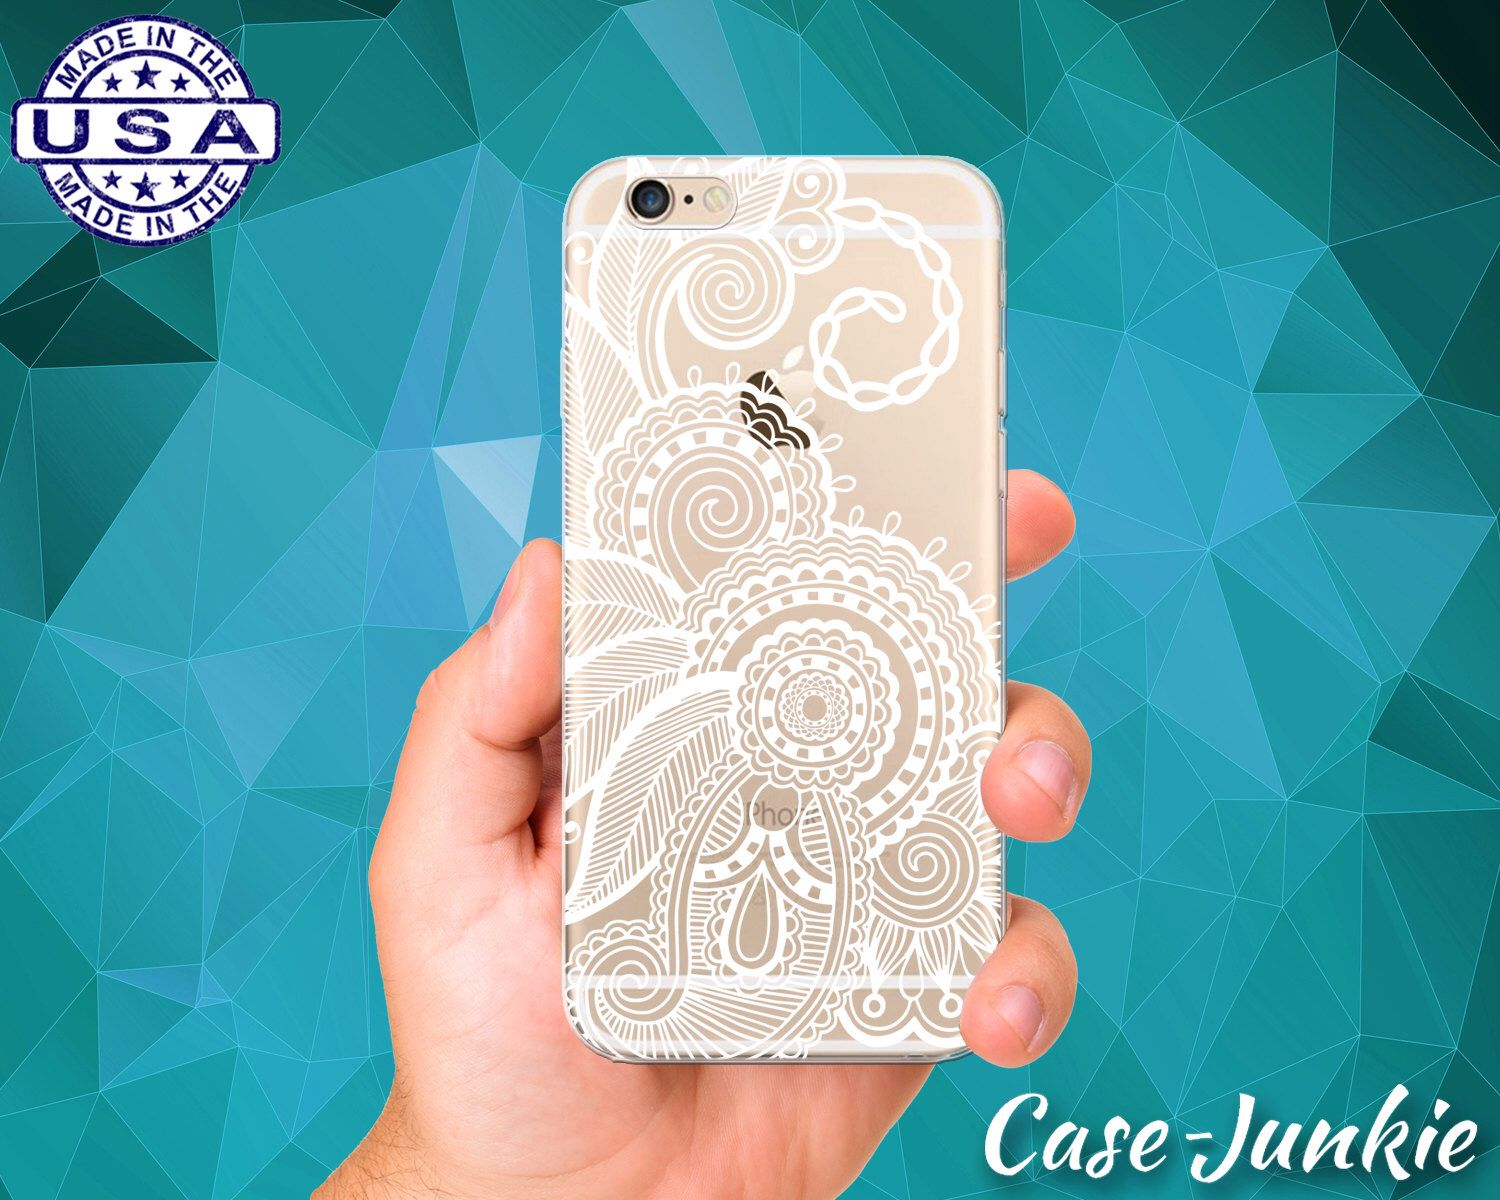 White henna design 5 five white henna designs - White Henna Flowery Tattoo Flower Design Cute Tumblr Inspired Clear Transparent Rubber Case For Iphone 5